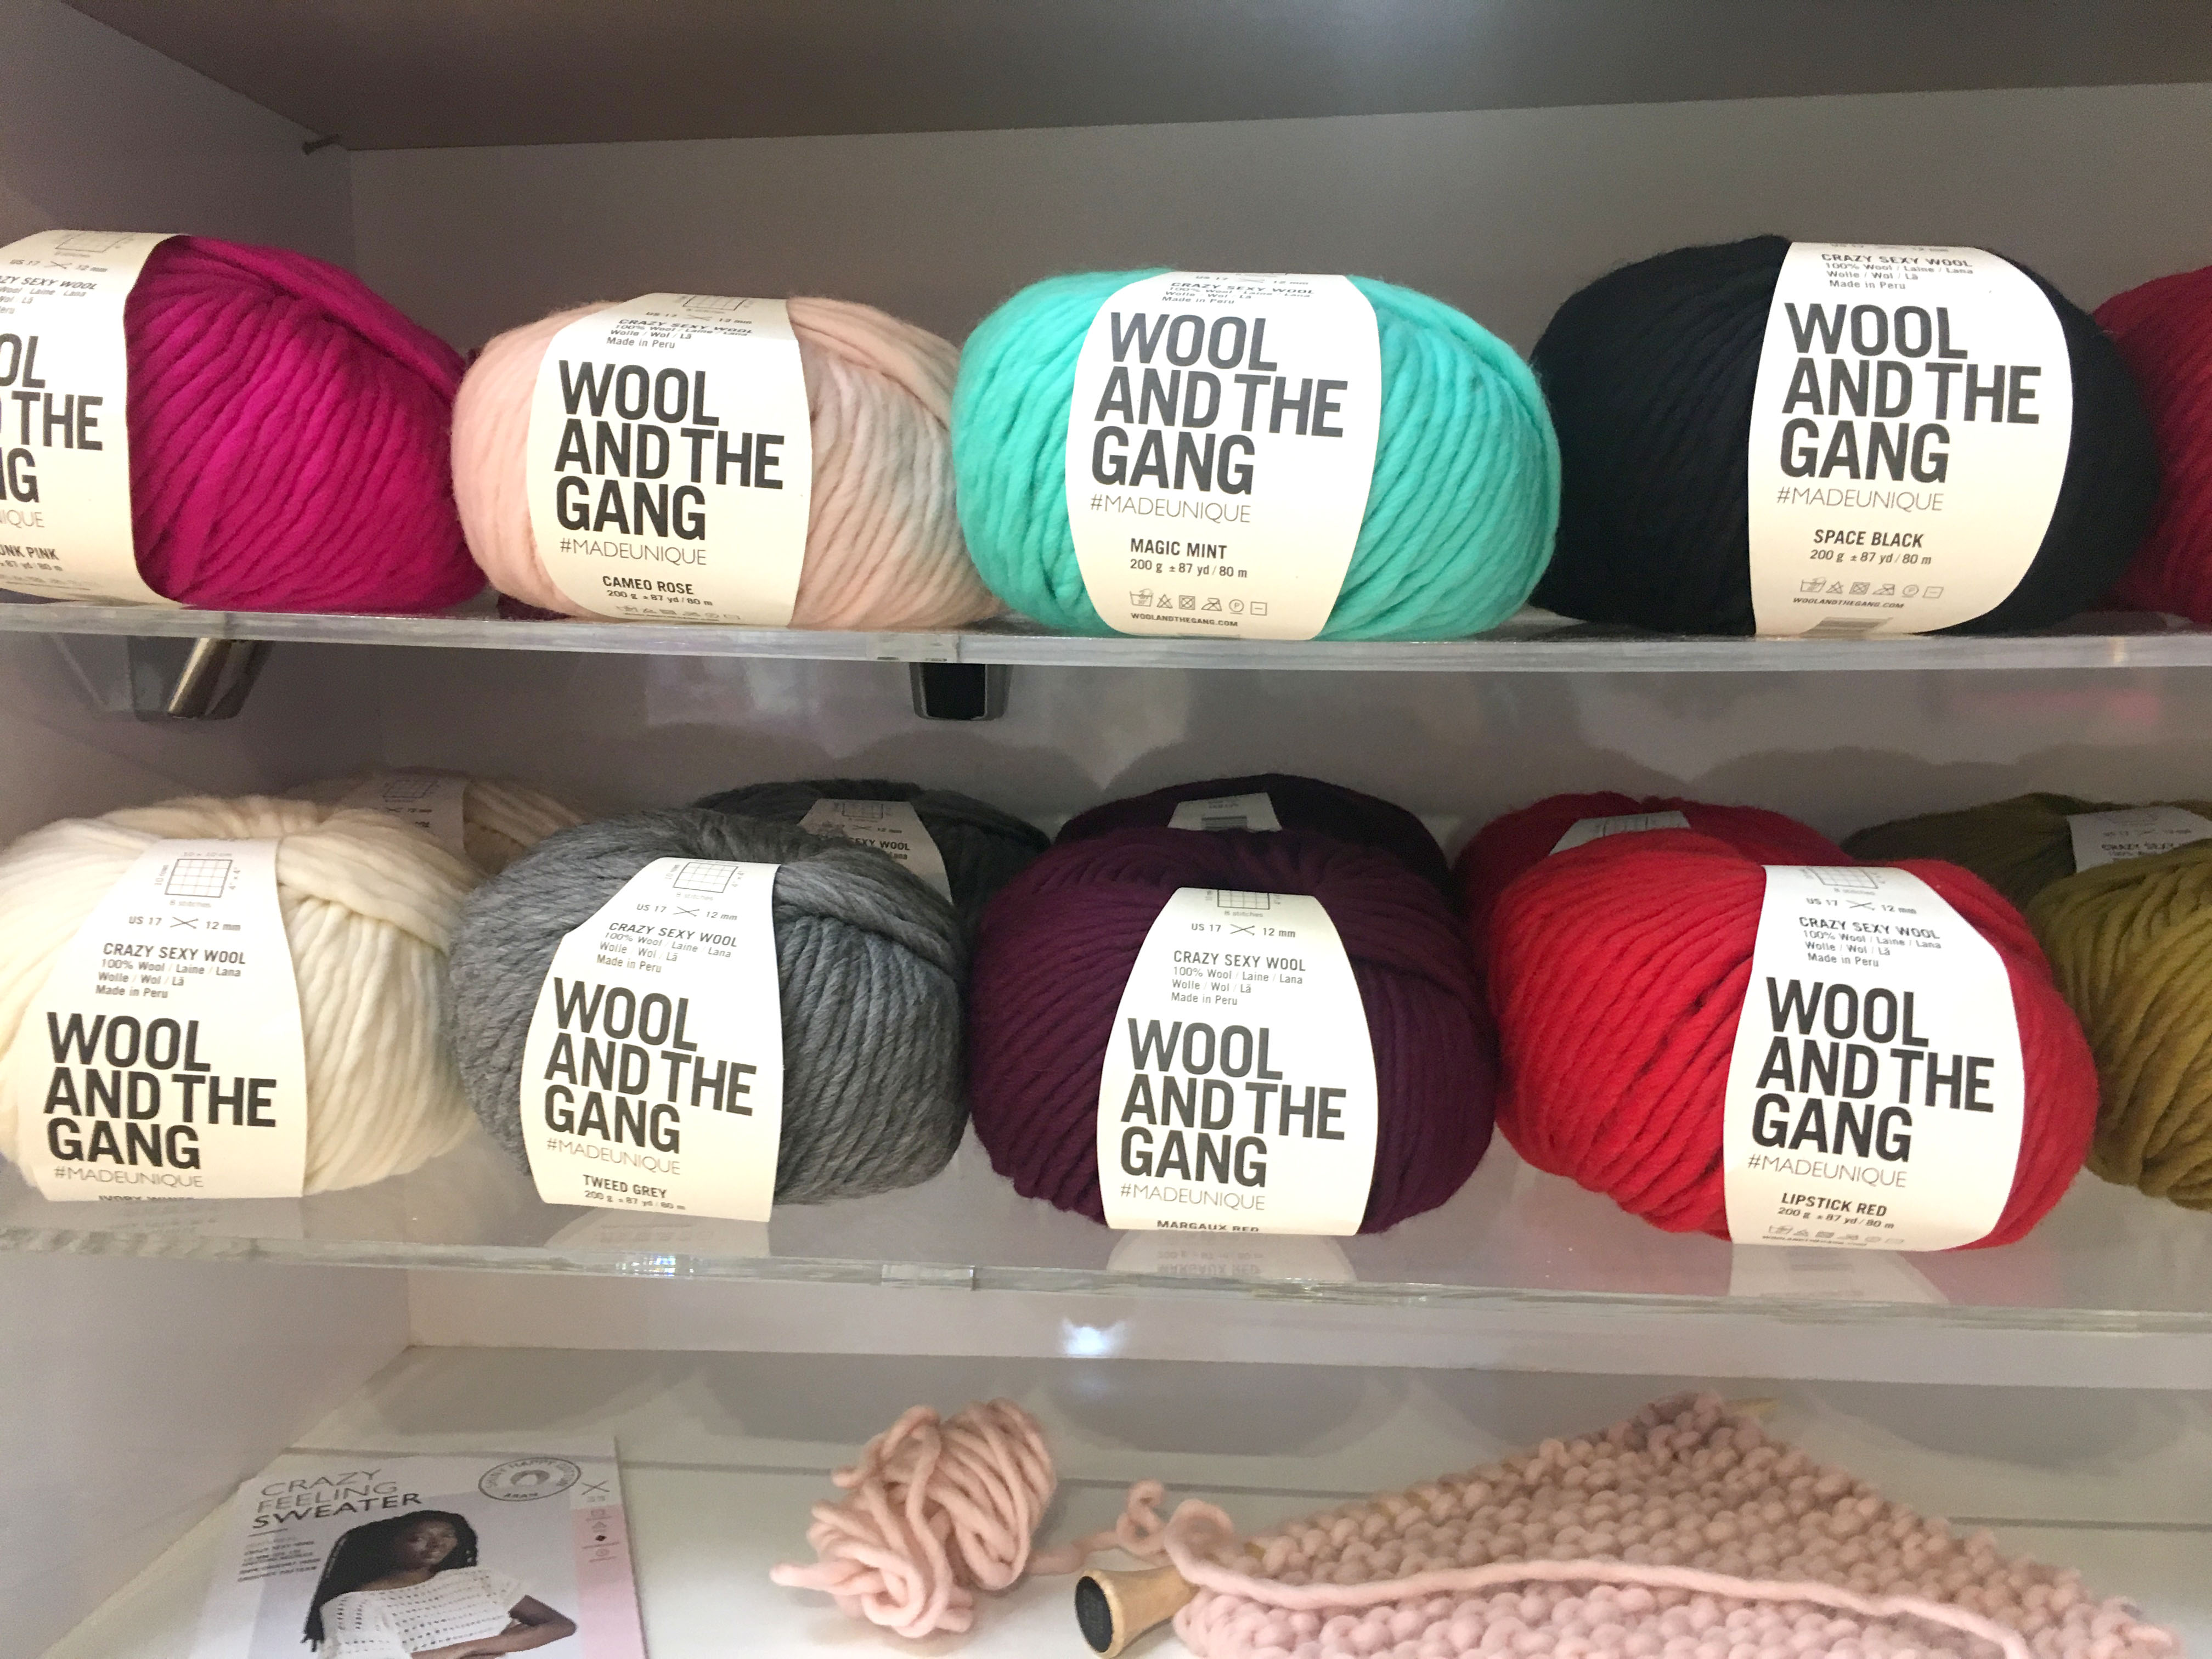 Wool and The Gang Wool on a shelf display